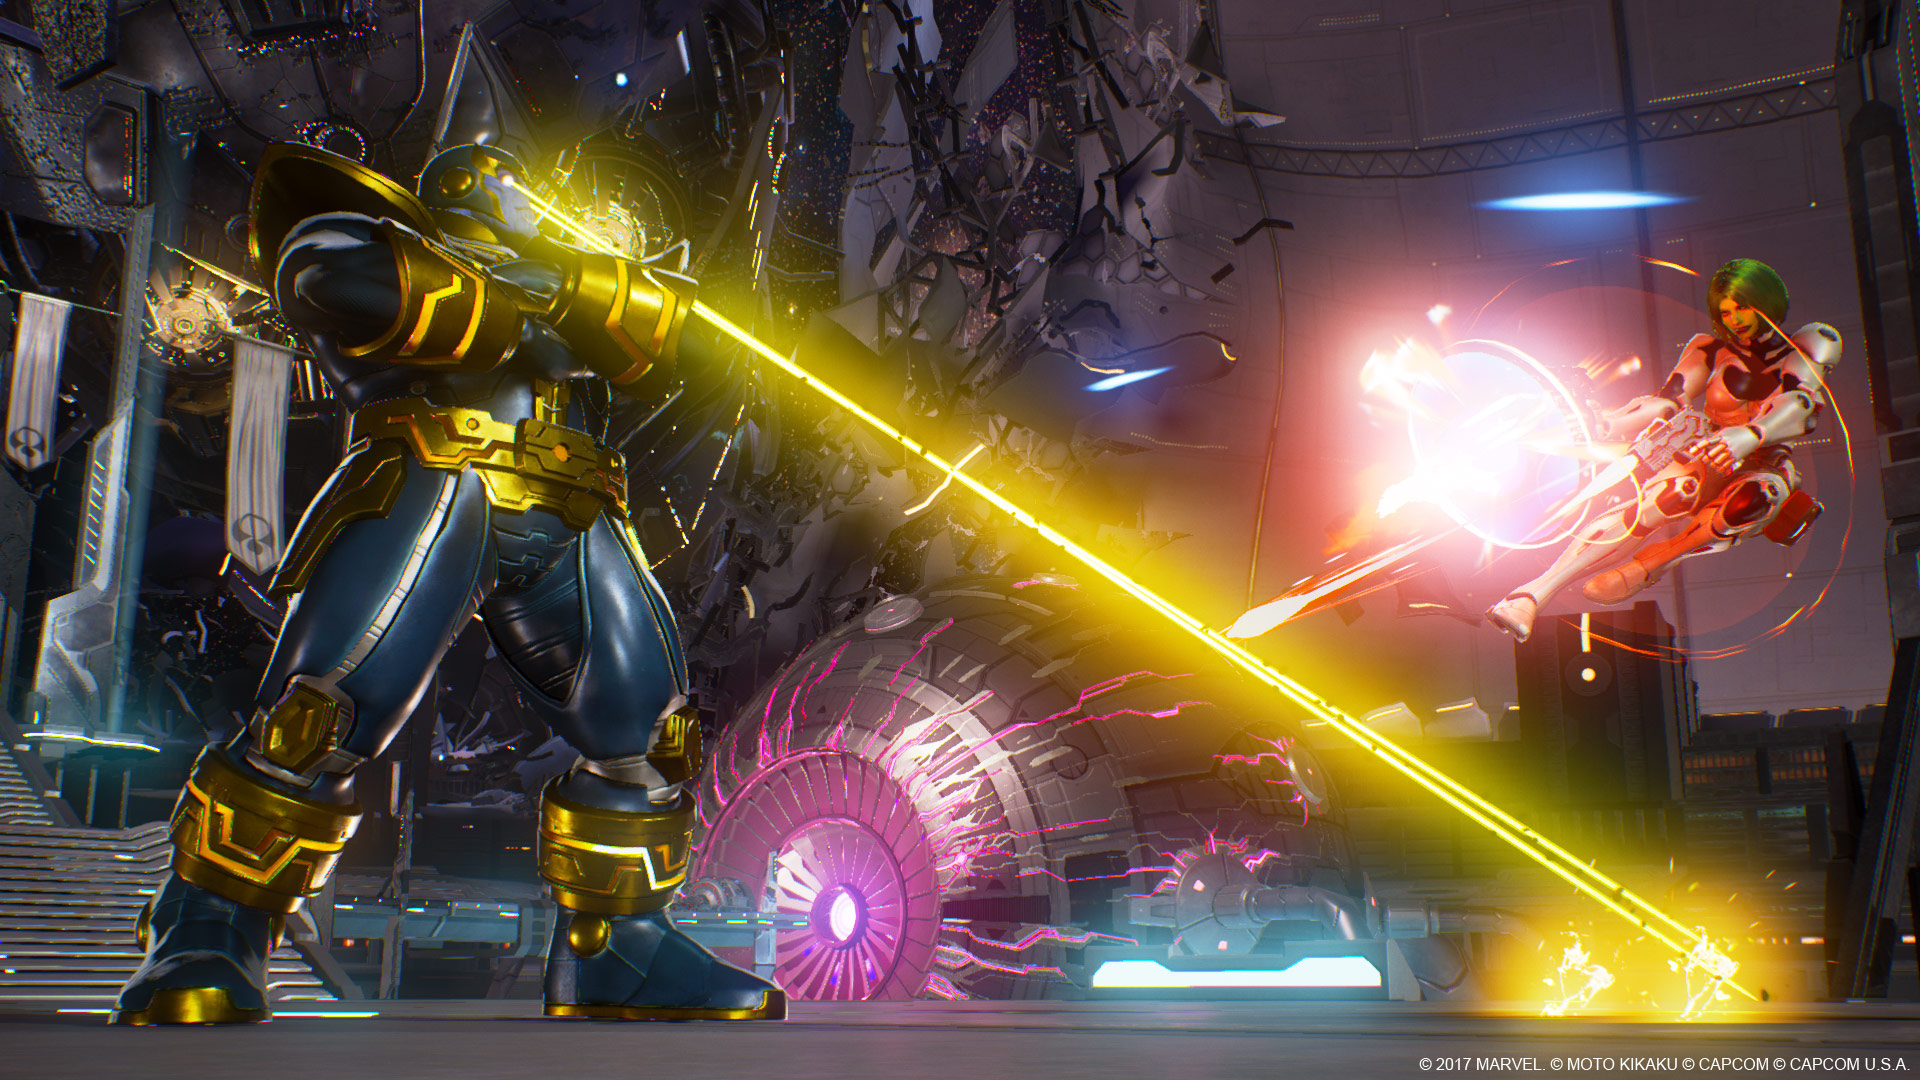 Marvel vs. Capcom: Infinite cover art and new character images from E3 2017 15 out of 26 image gallery